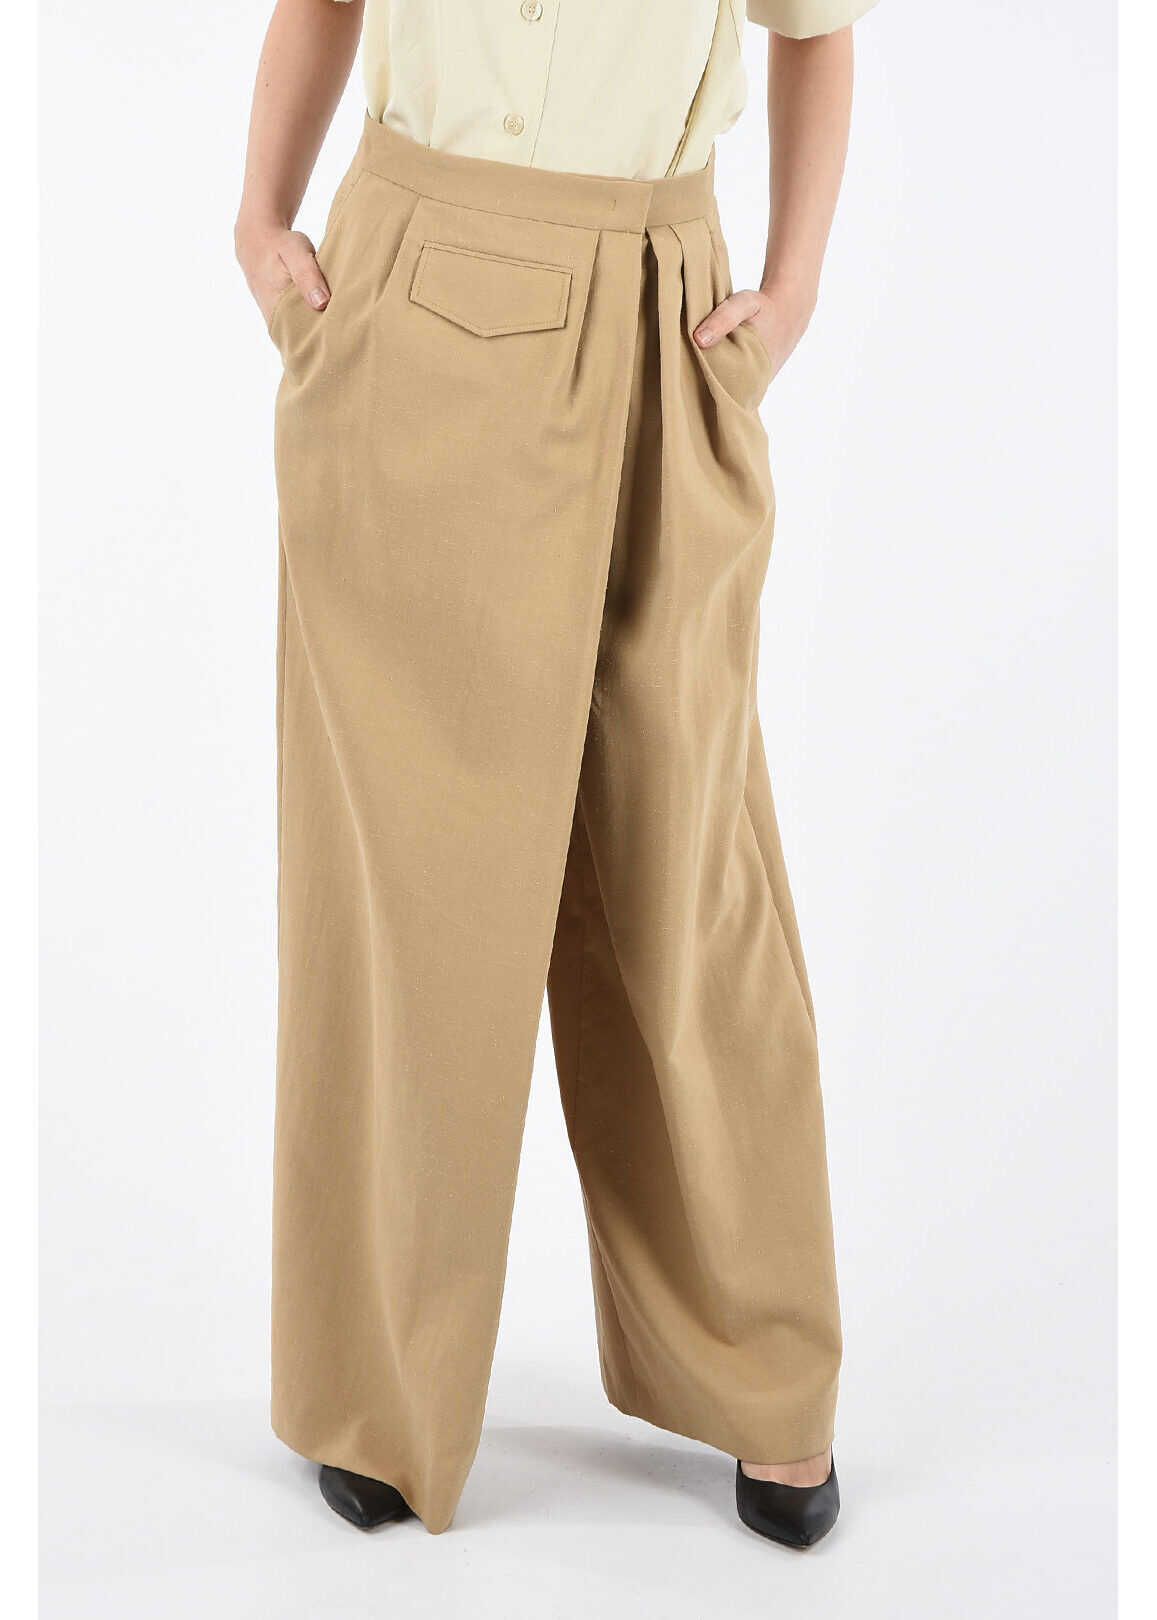 Salvatore Ferragamo Cotton and Linen Palazzo Pants BEIGE